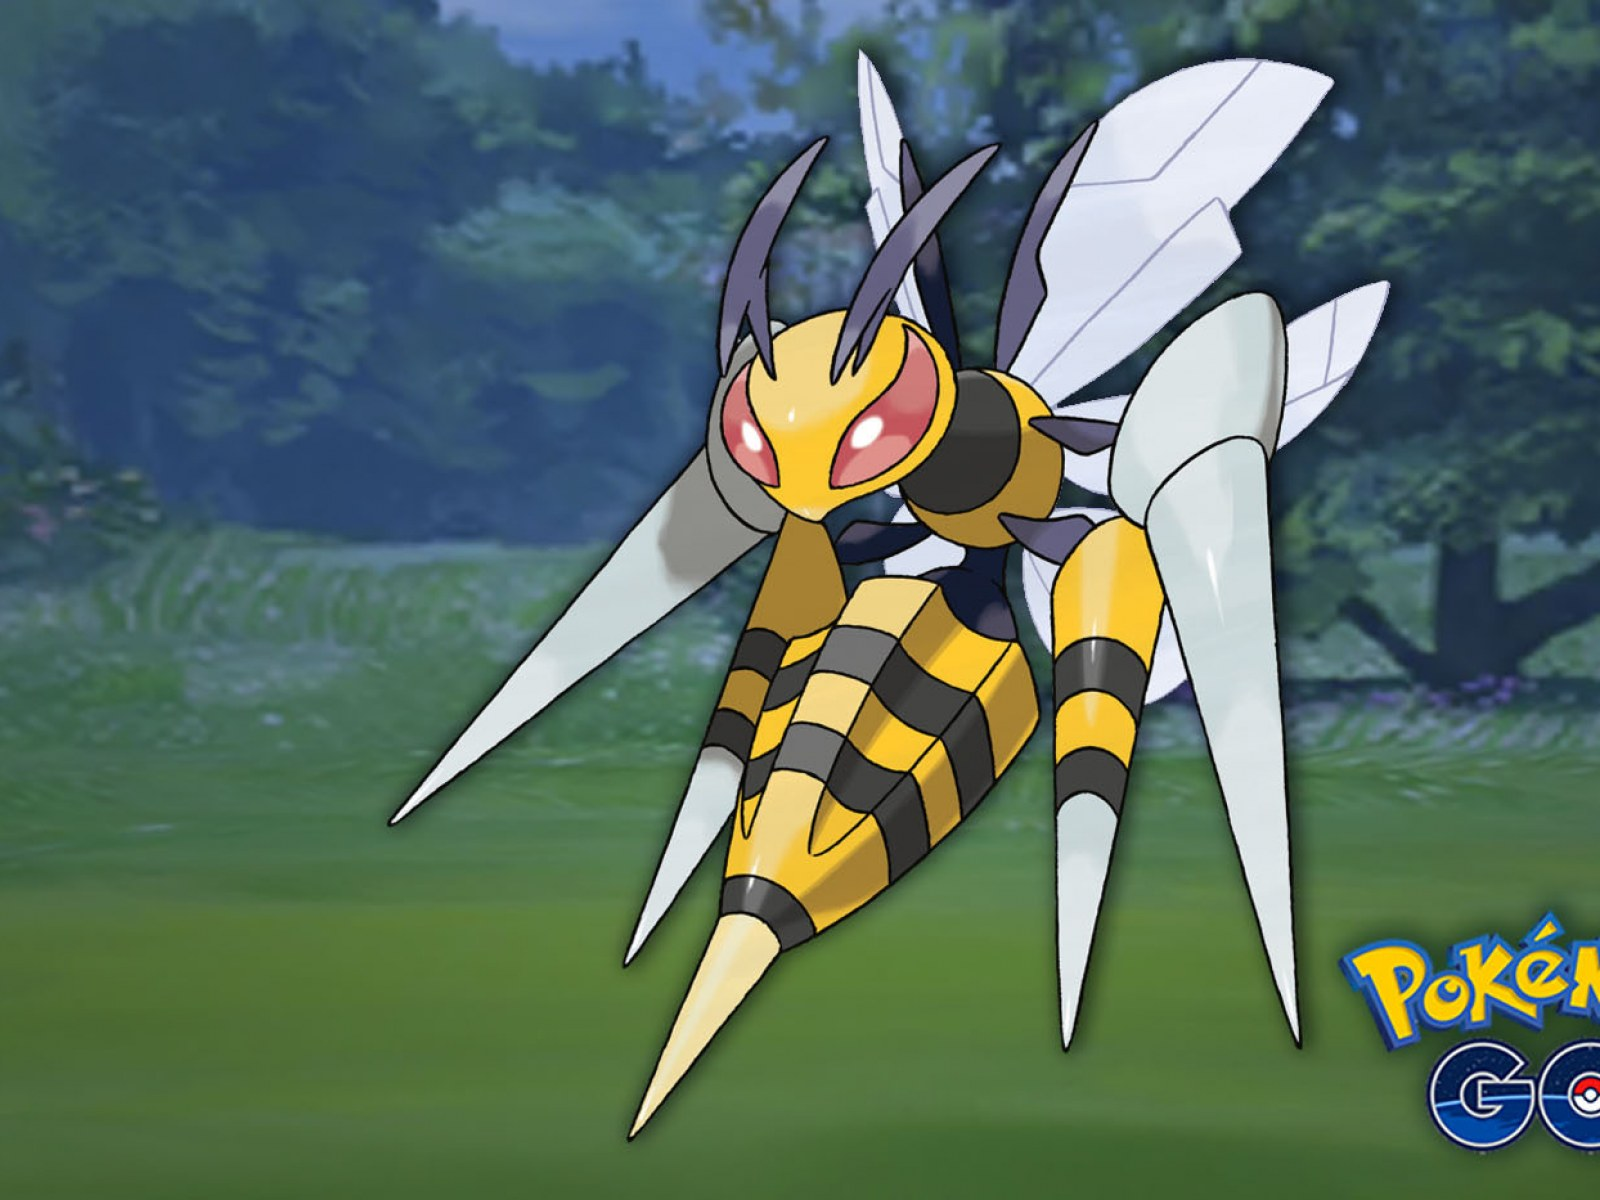 Pokémon Go' Mega Beedrill: Special Research Tasks and How to Mega Evolve